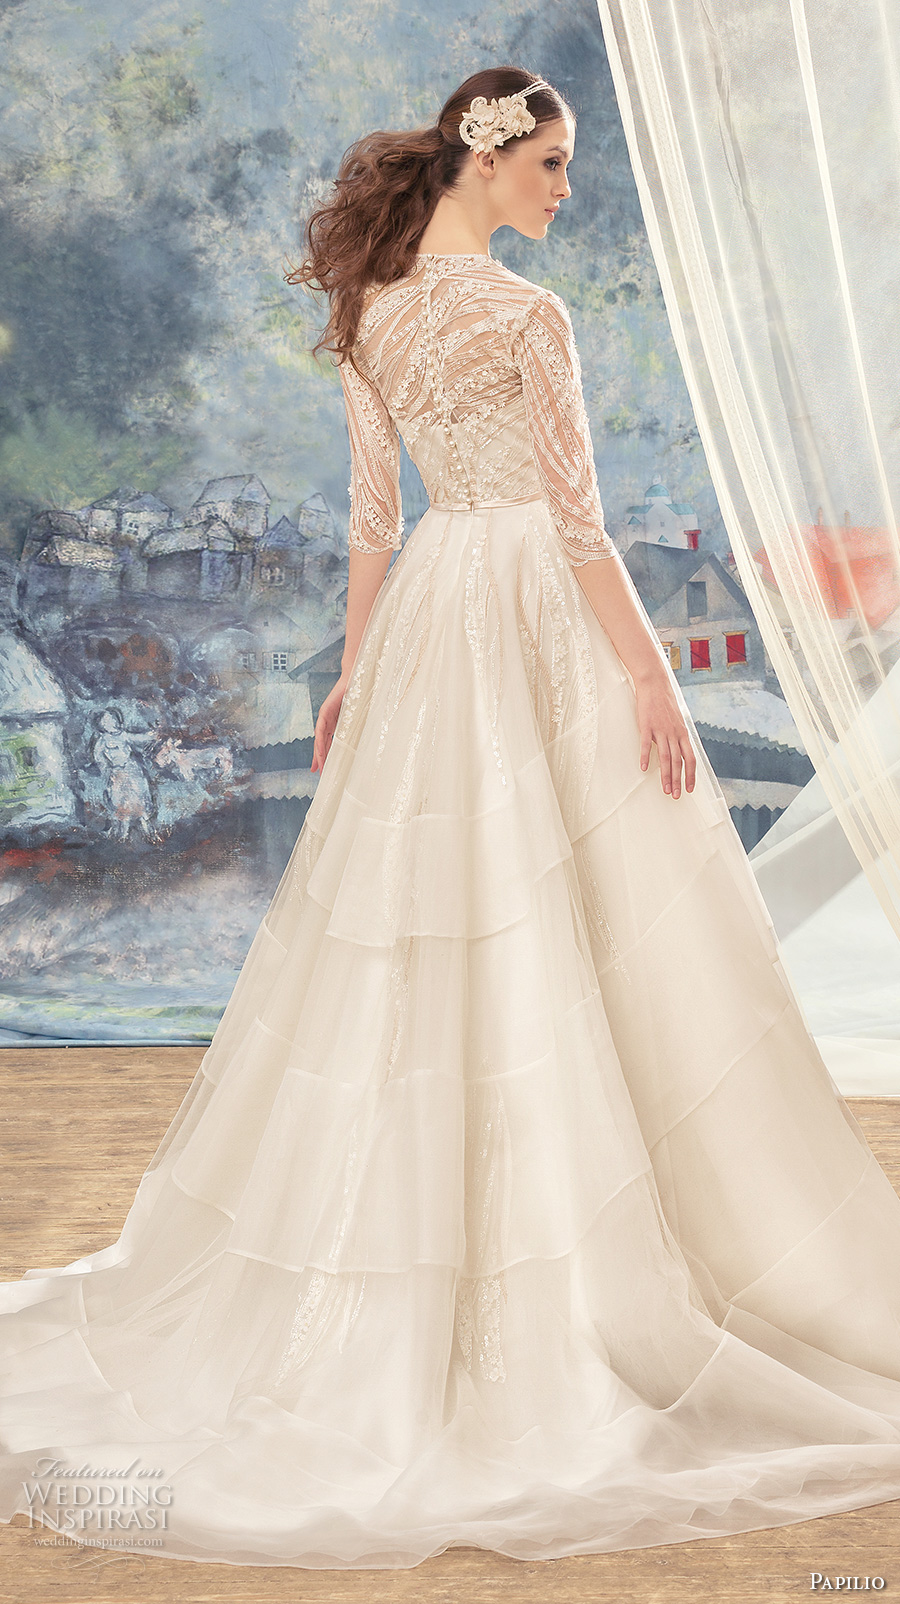 papilio 2017 bridal half sleeves illusion v sweetheart neckline heavily embellished bodice layered skirt romantic a  line wedding dress covered lace back sweep train (cedarbird) bv